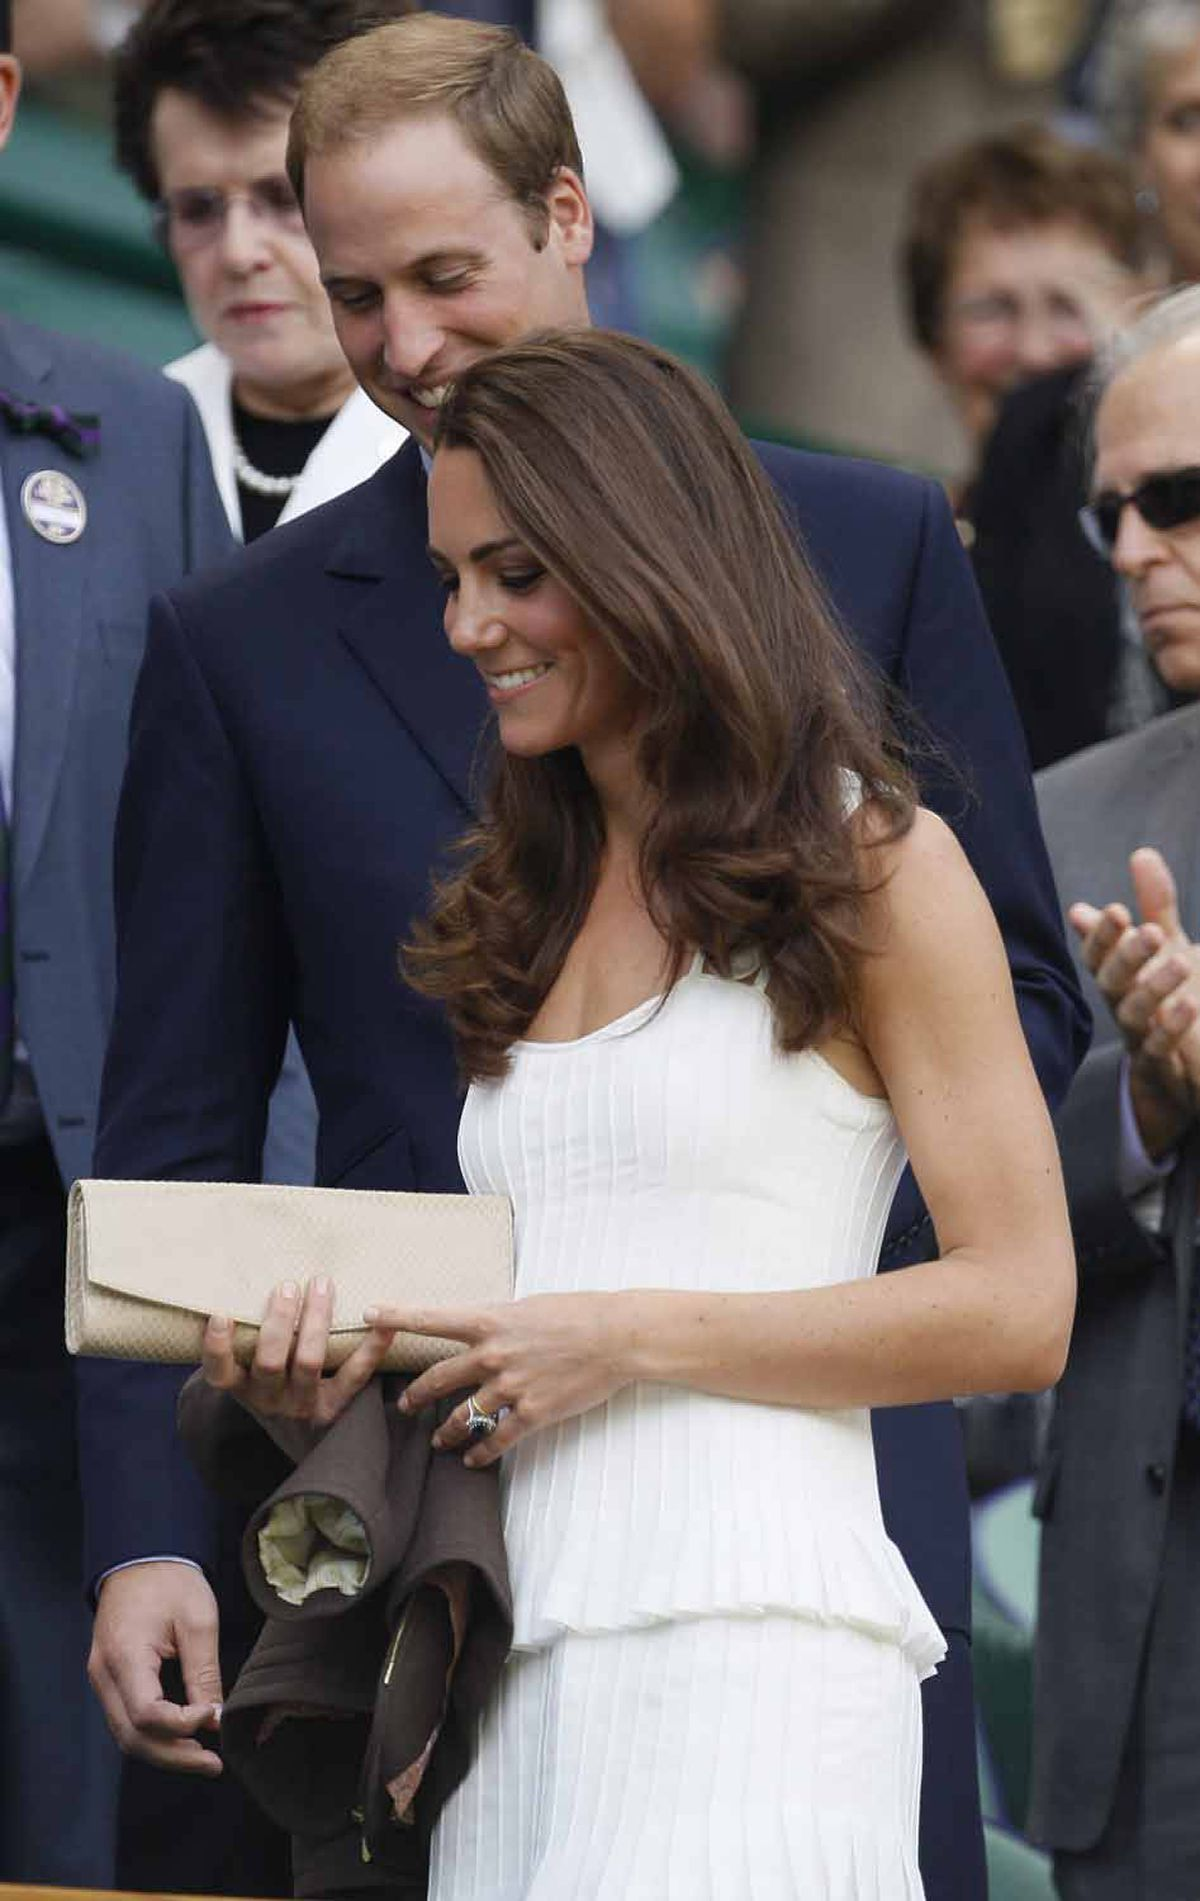 Kate attends Wimbledon on June 27 in a sporty white dress by Temperley London.